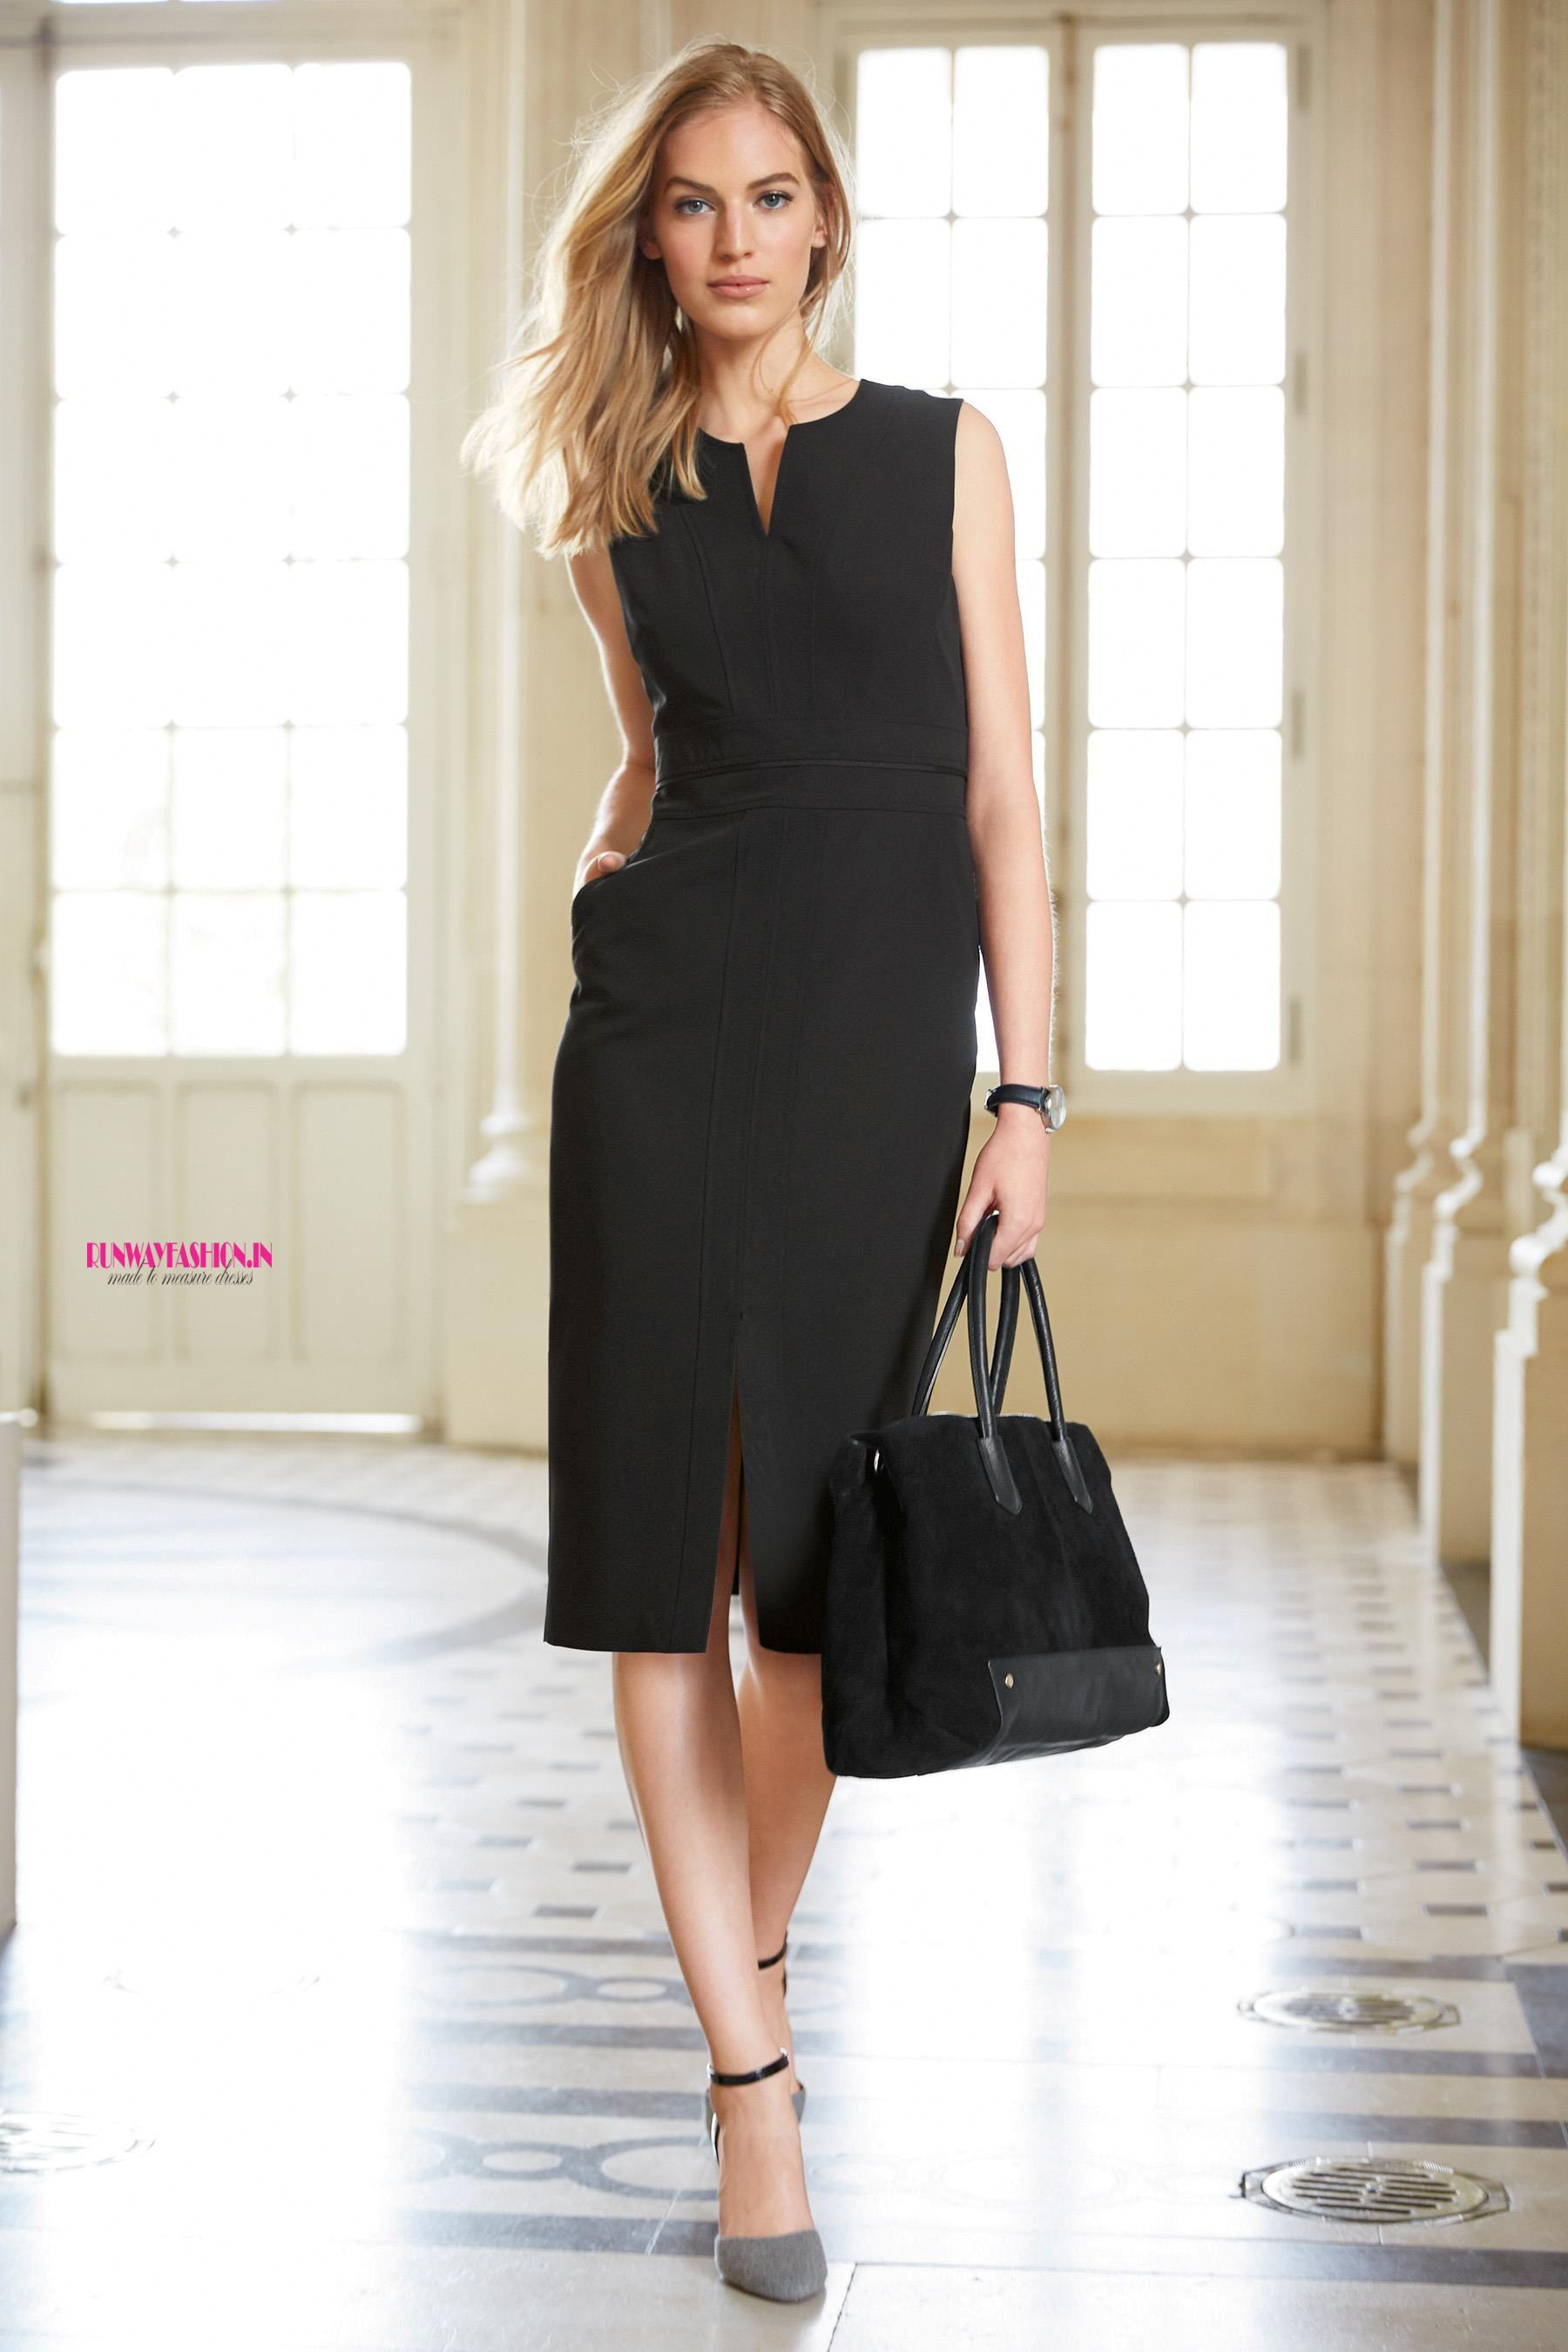 office dresses - Runway Fashion - Tailor made dresses ...